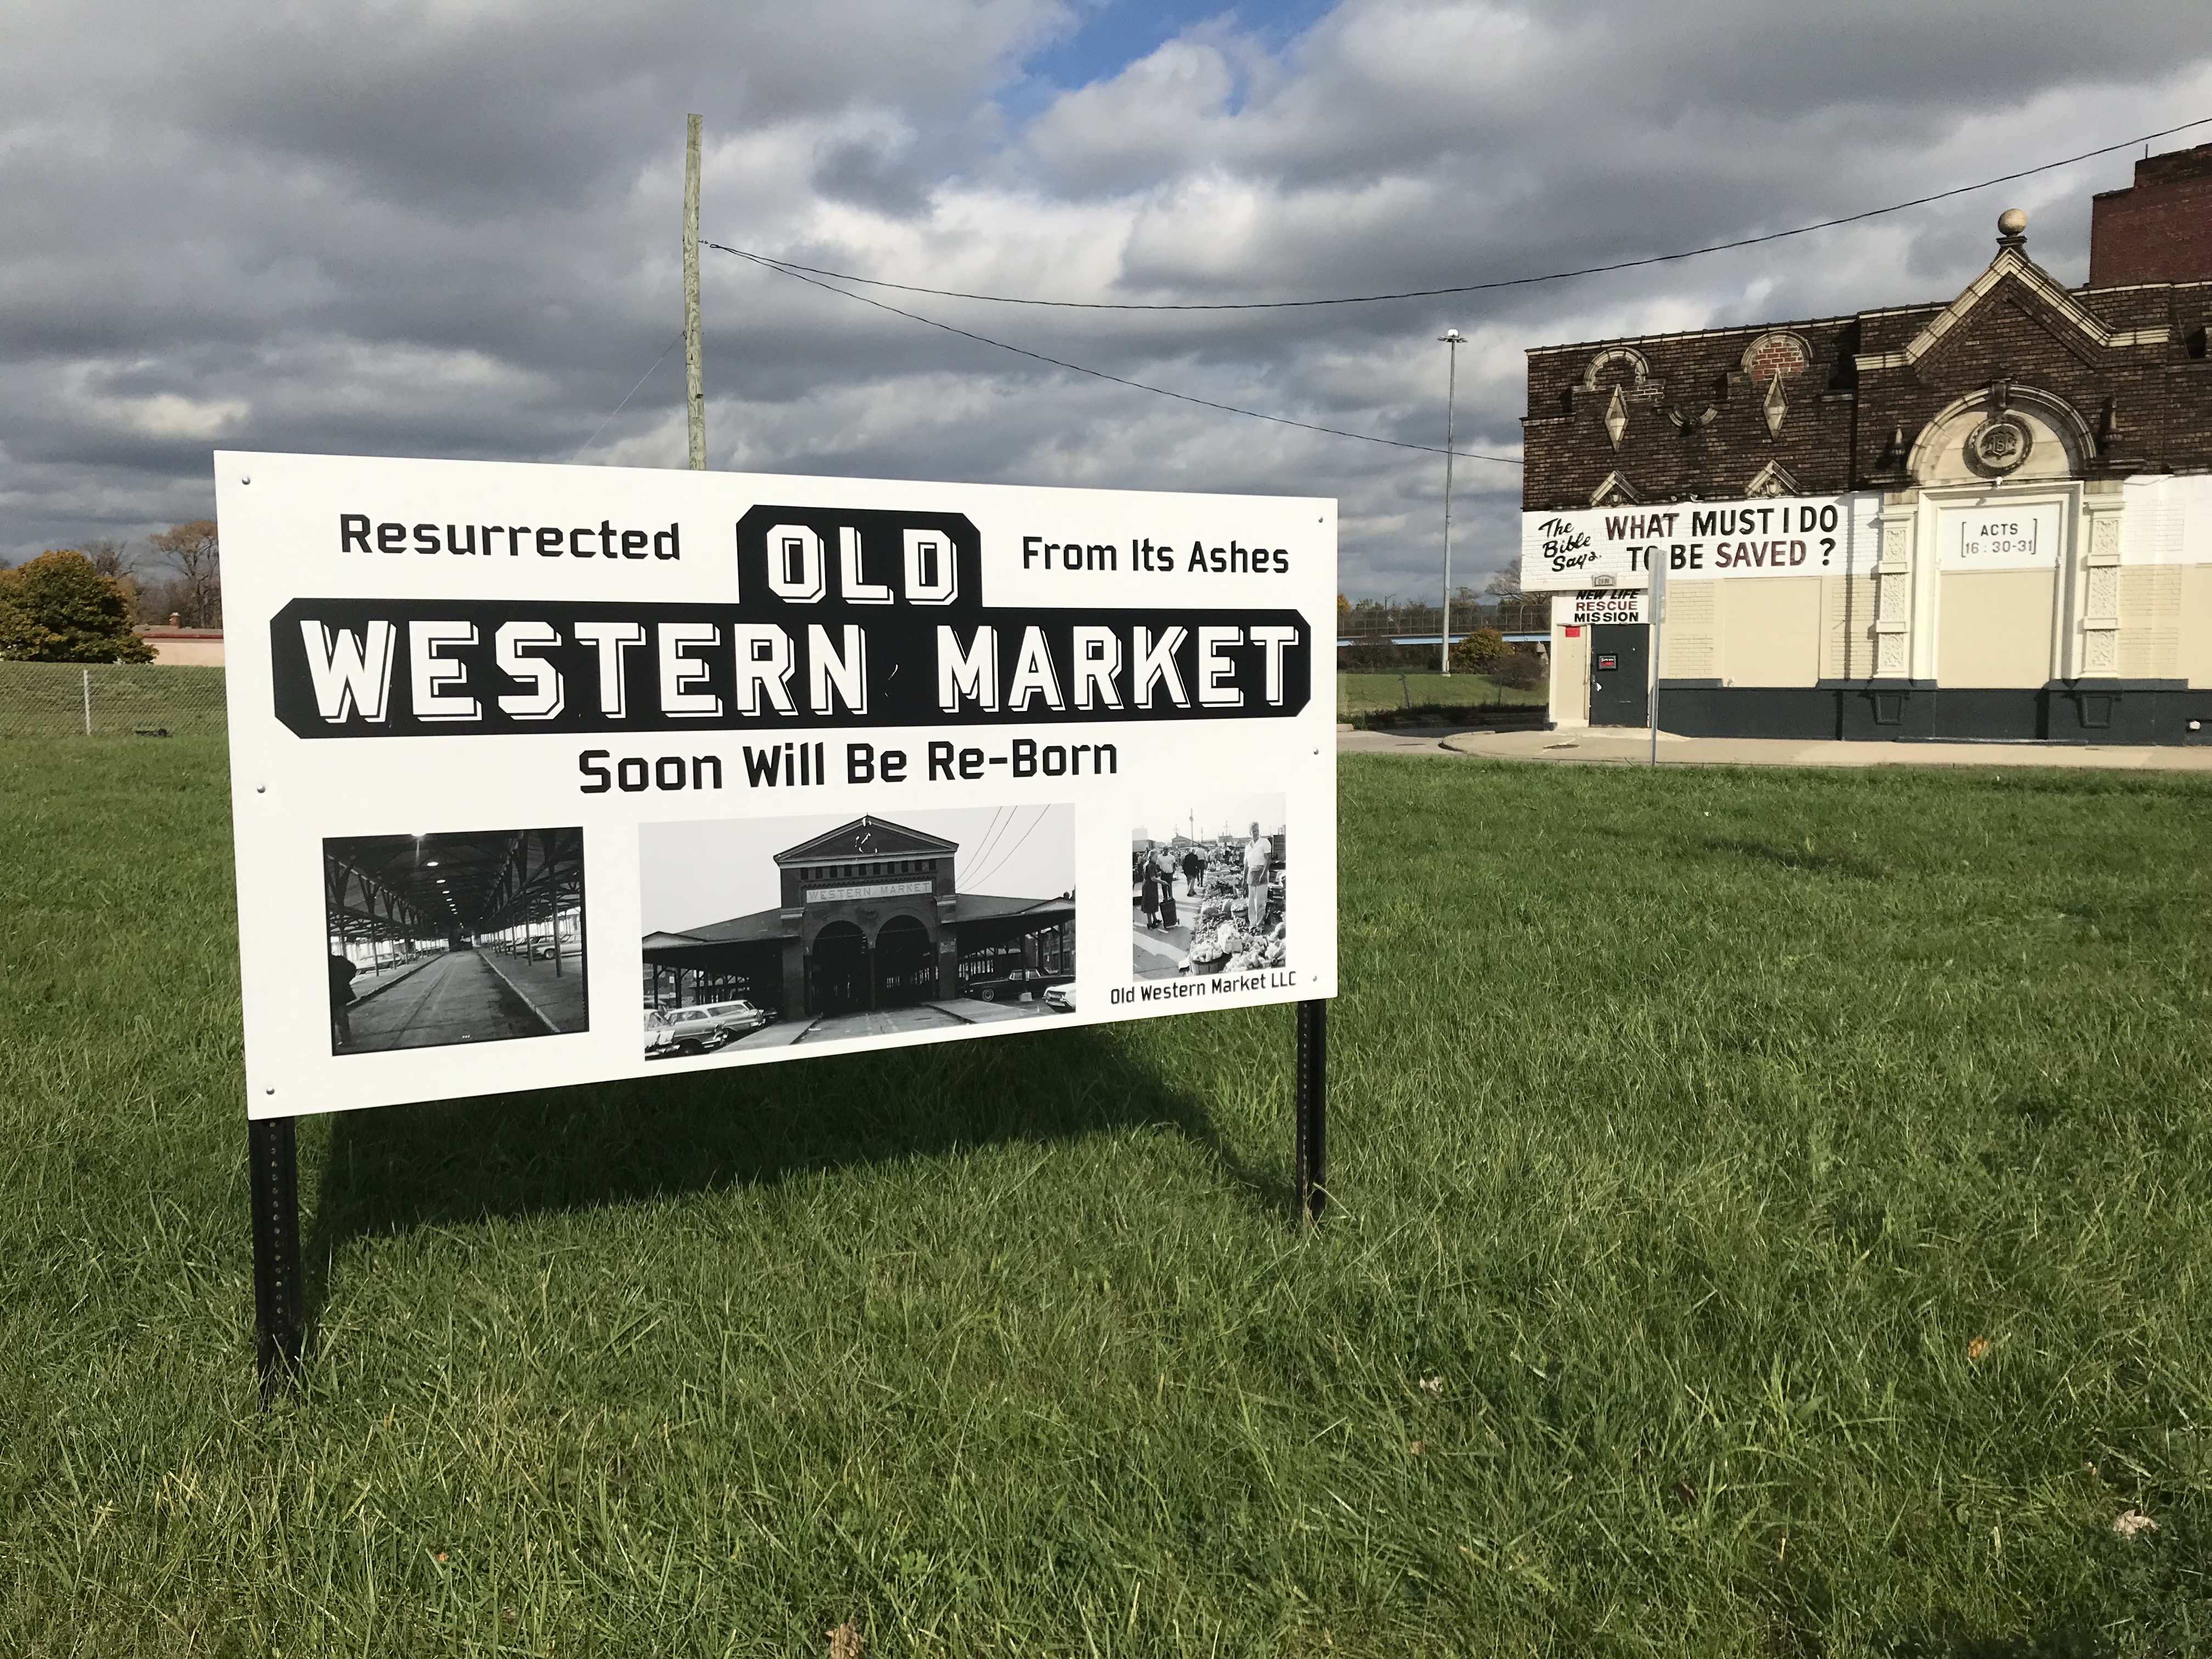 """A sign in a grassy lot with photos of an old brick, open-air market  that says """"Old Western Market."""""""